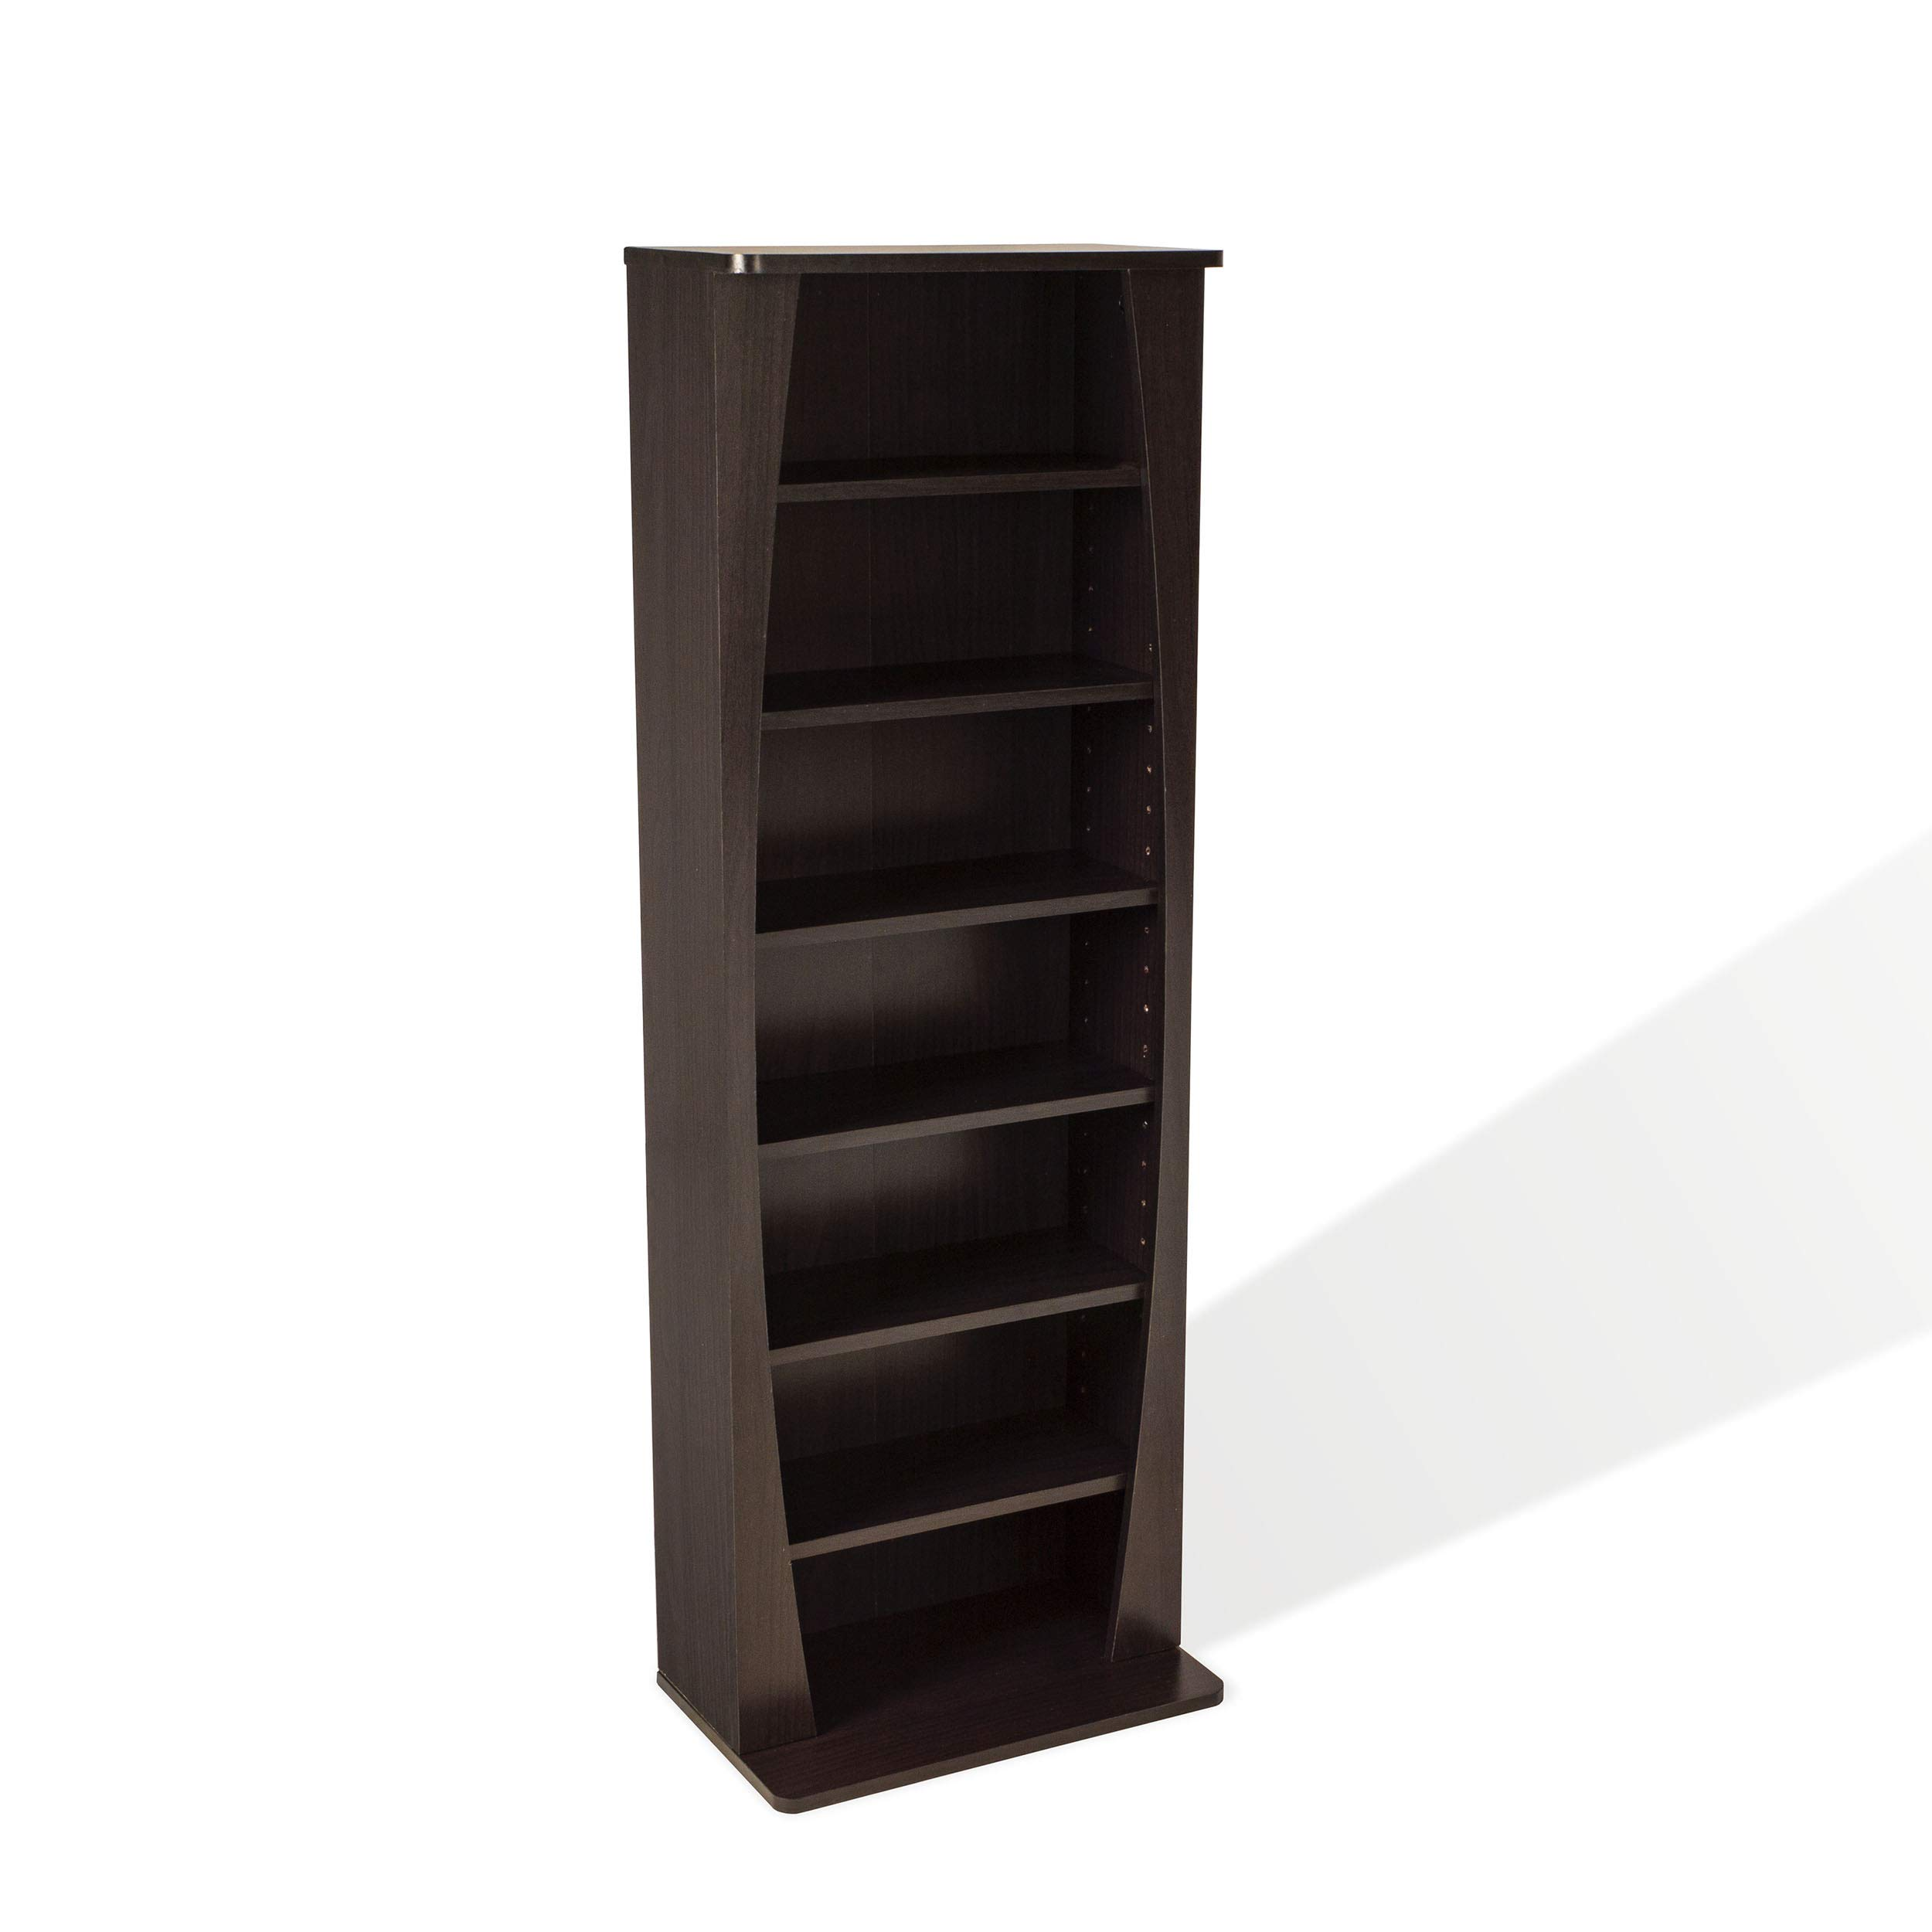 Atlantic Canoe Curved Multimedia Cabinet - Holds 231Cds, 115Dvds or 140 Blu-ray/Games, Adjustable Shelves, PN22535717 in Espresso by Atlantic